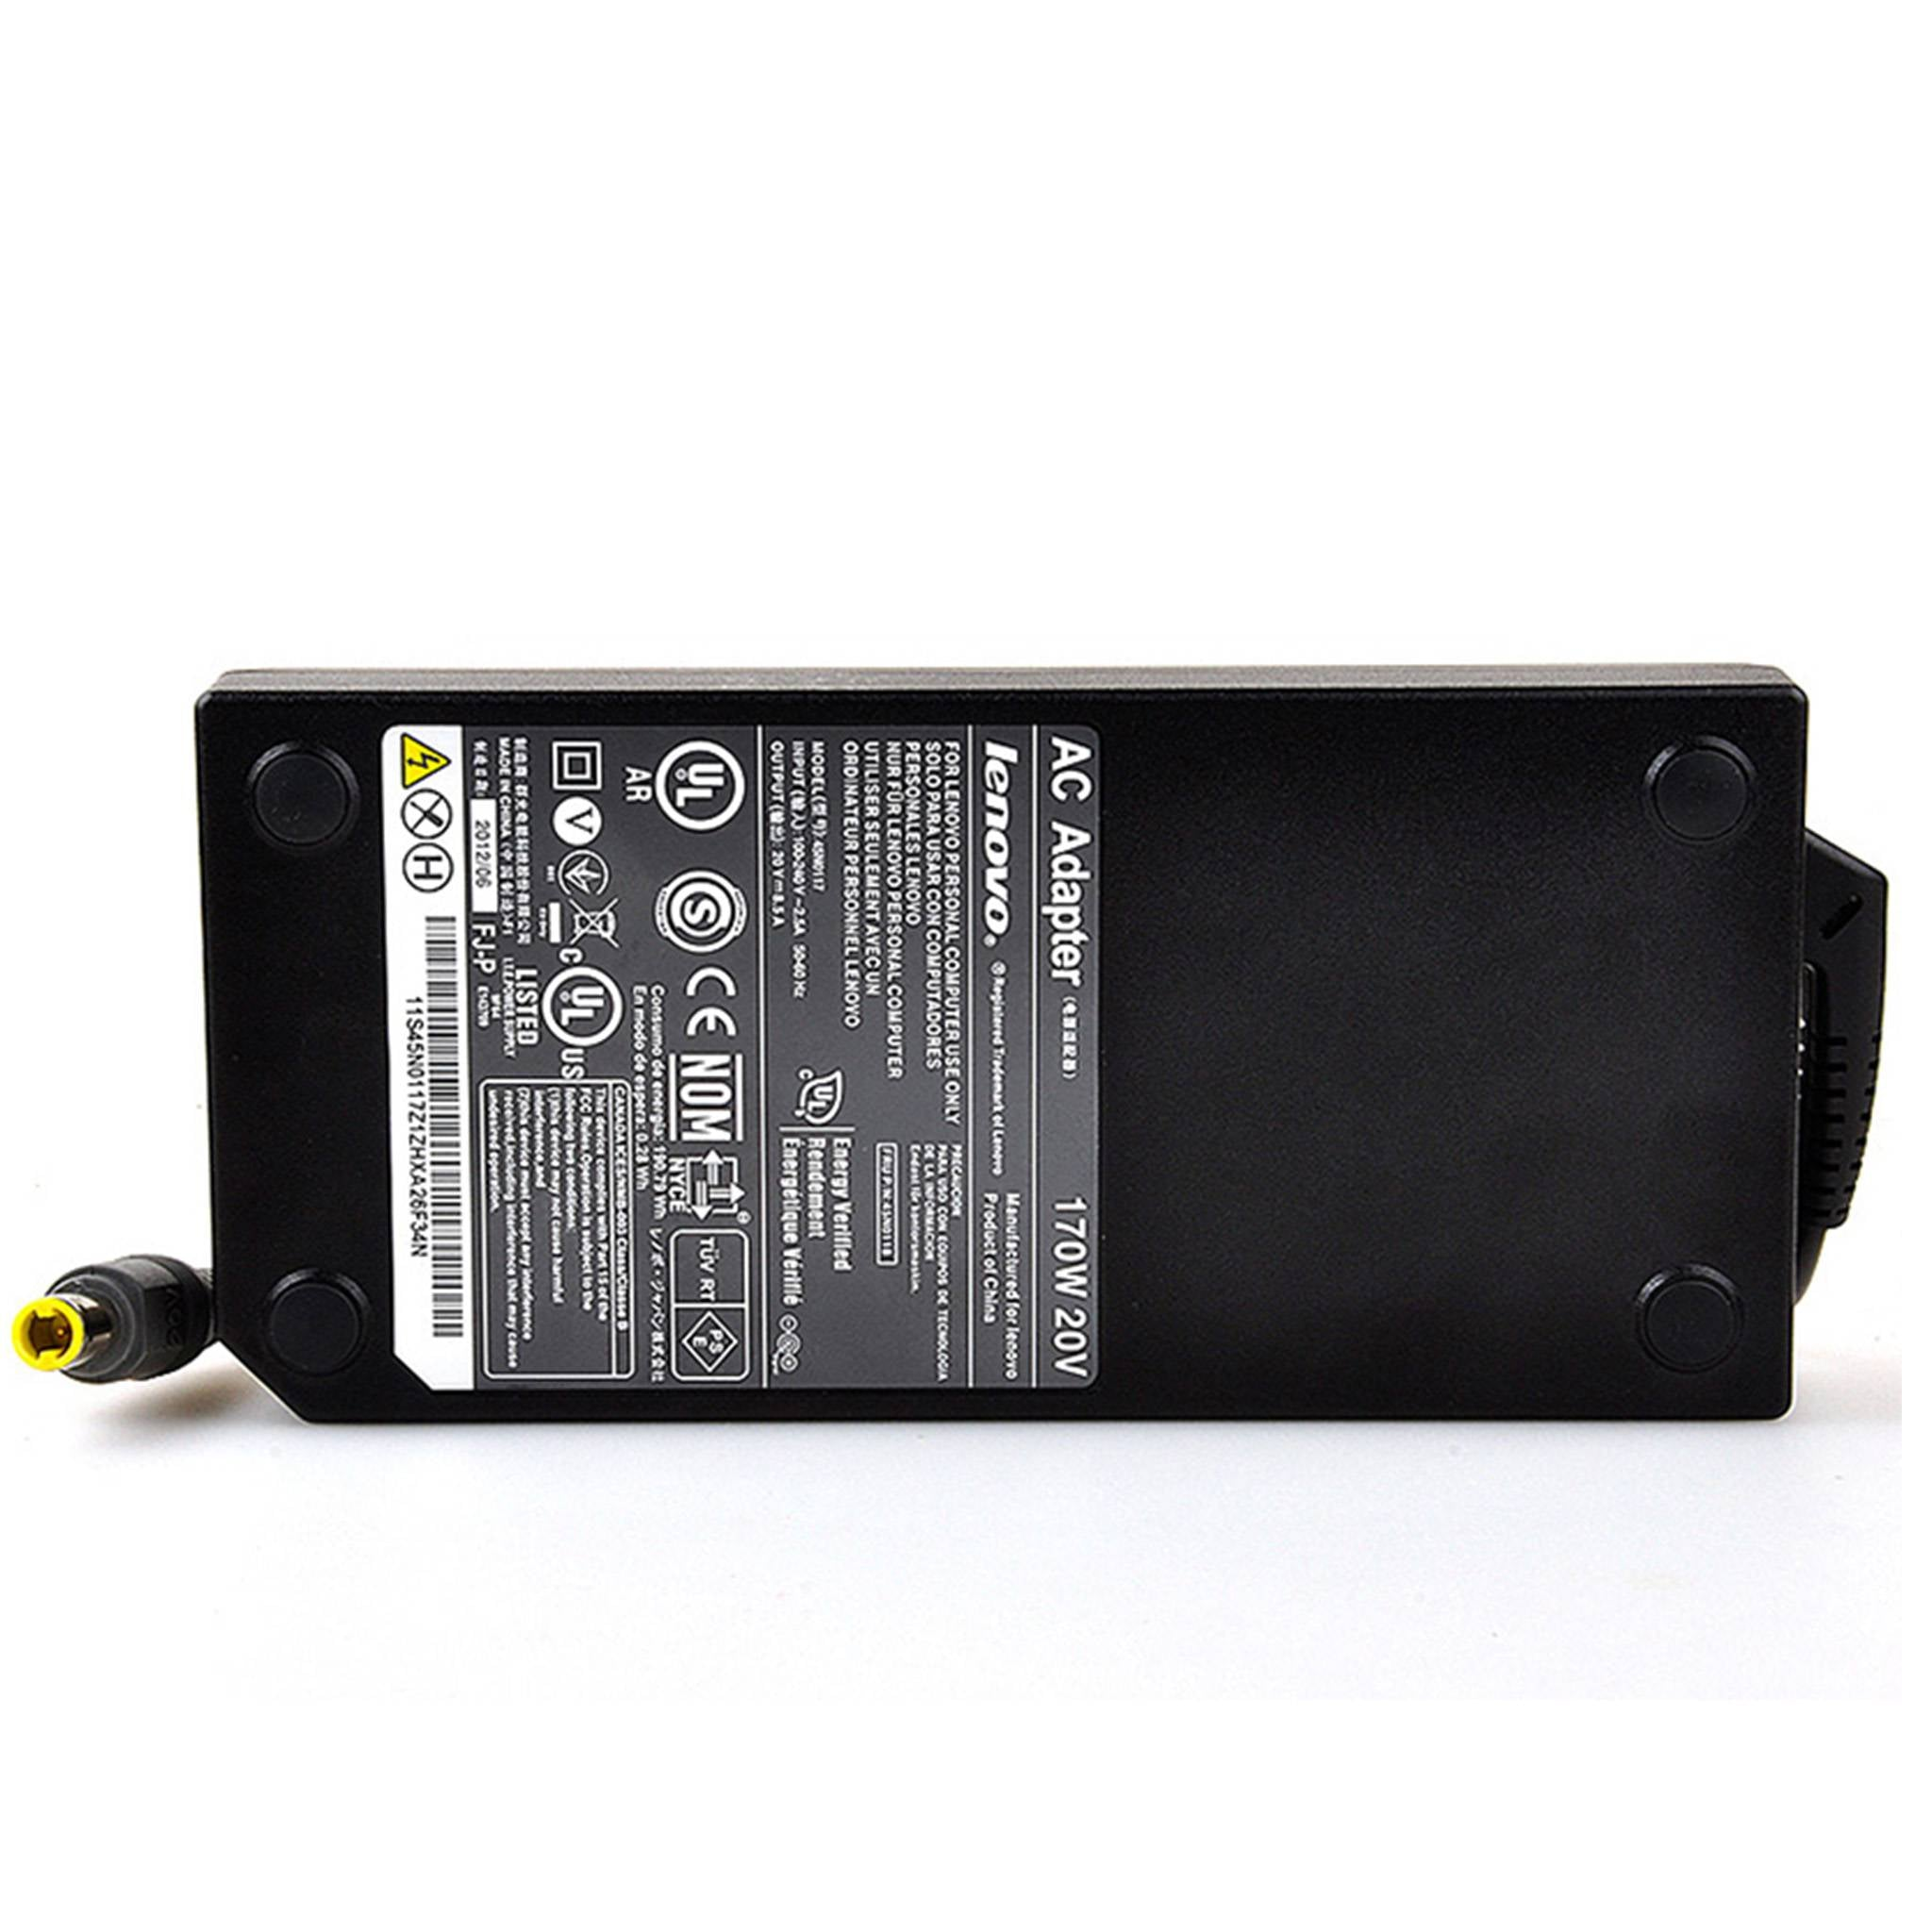 Lenovo ThinkPad W520 W530 20V 8.5A 170W AC Adapter